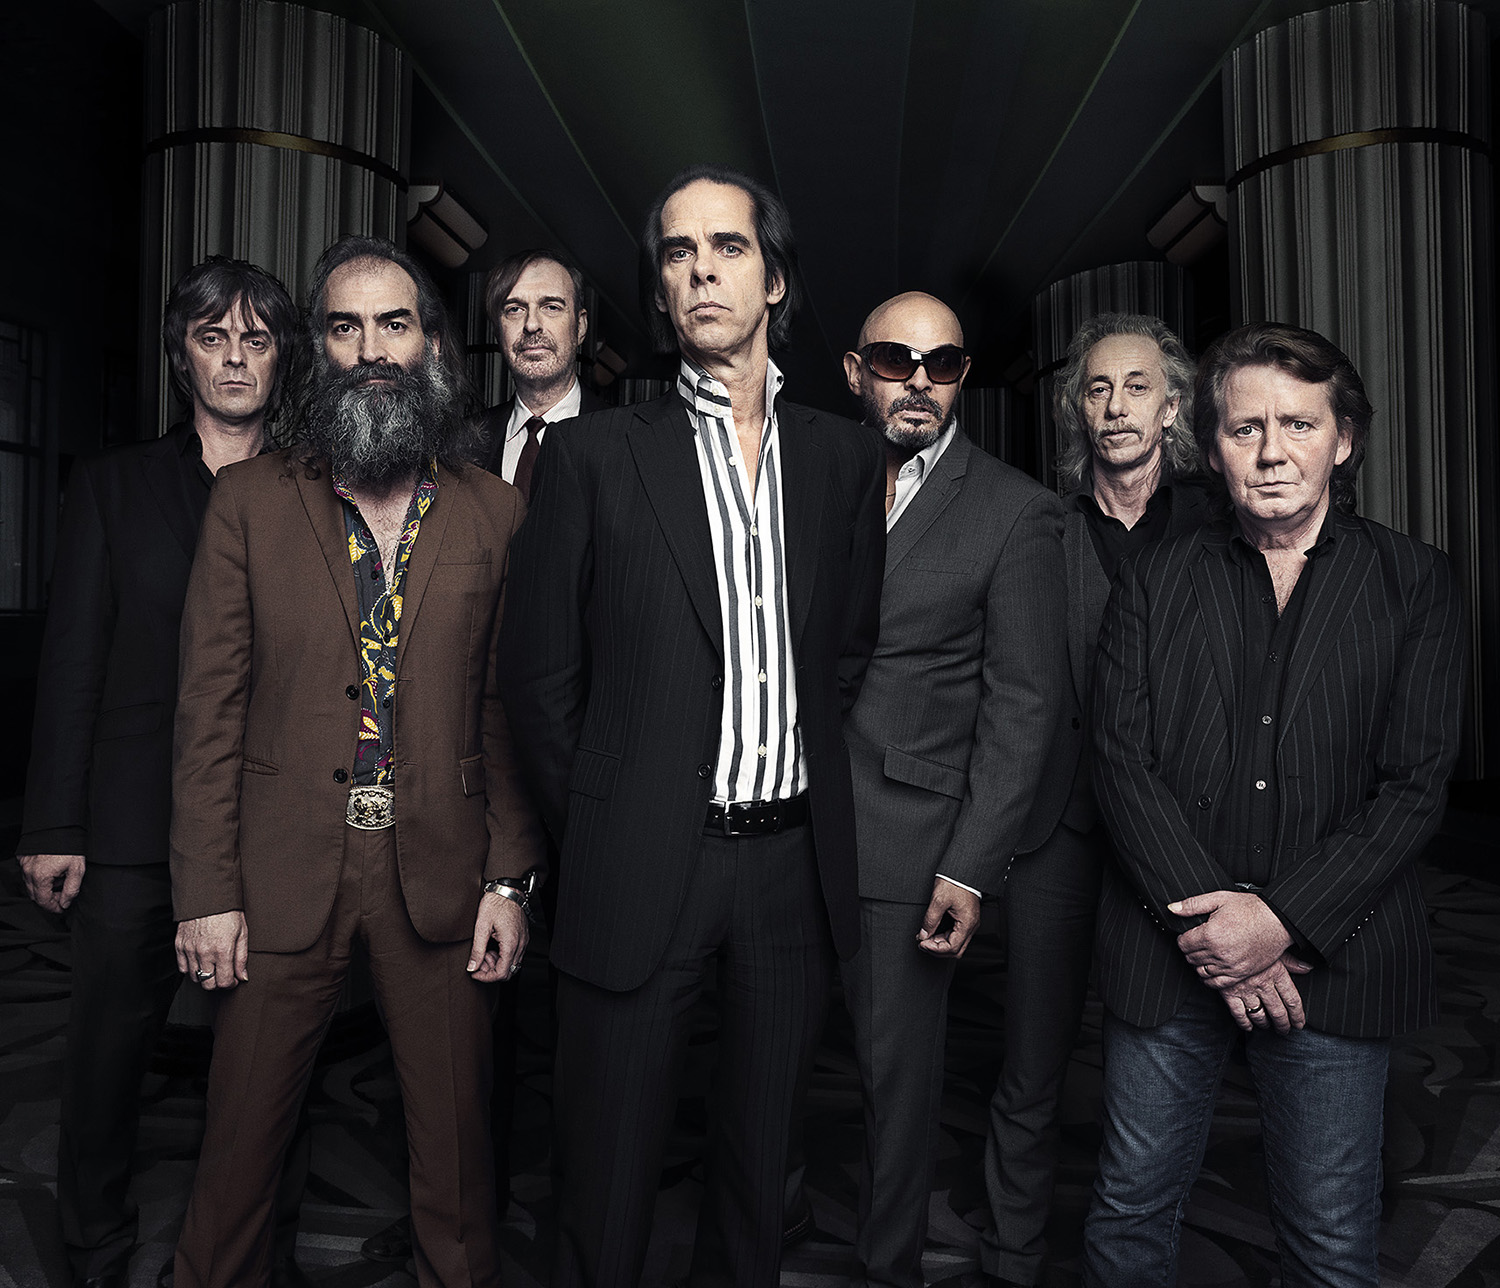 NEWS: Nick Cave & The Bad Seeds announce UK arena tour